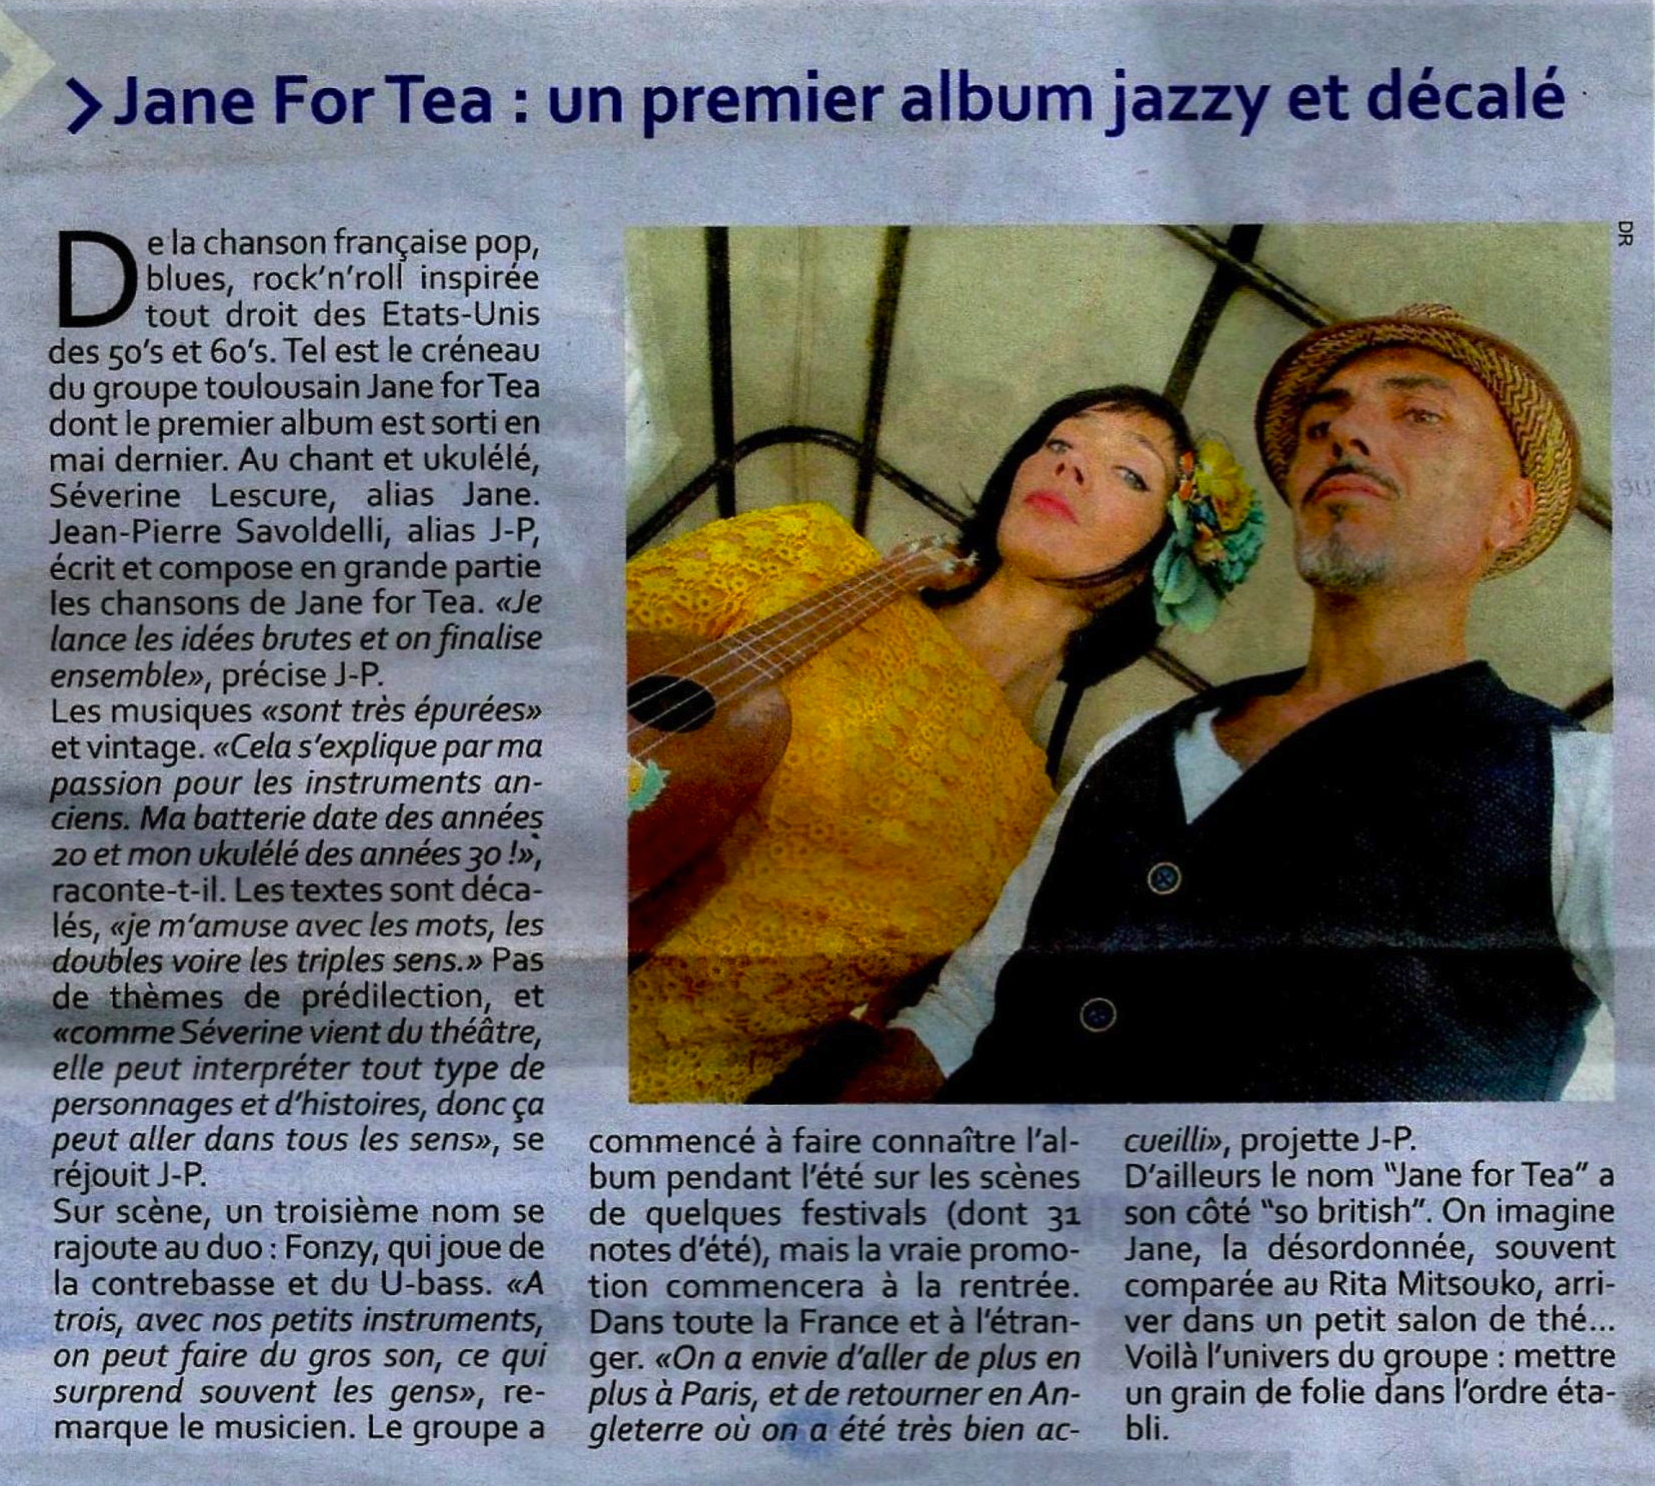 ALBUM JAZZY ET DECALE